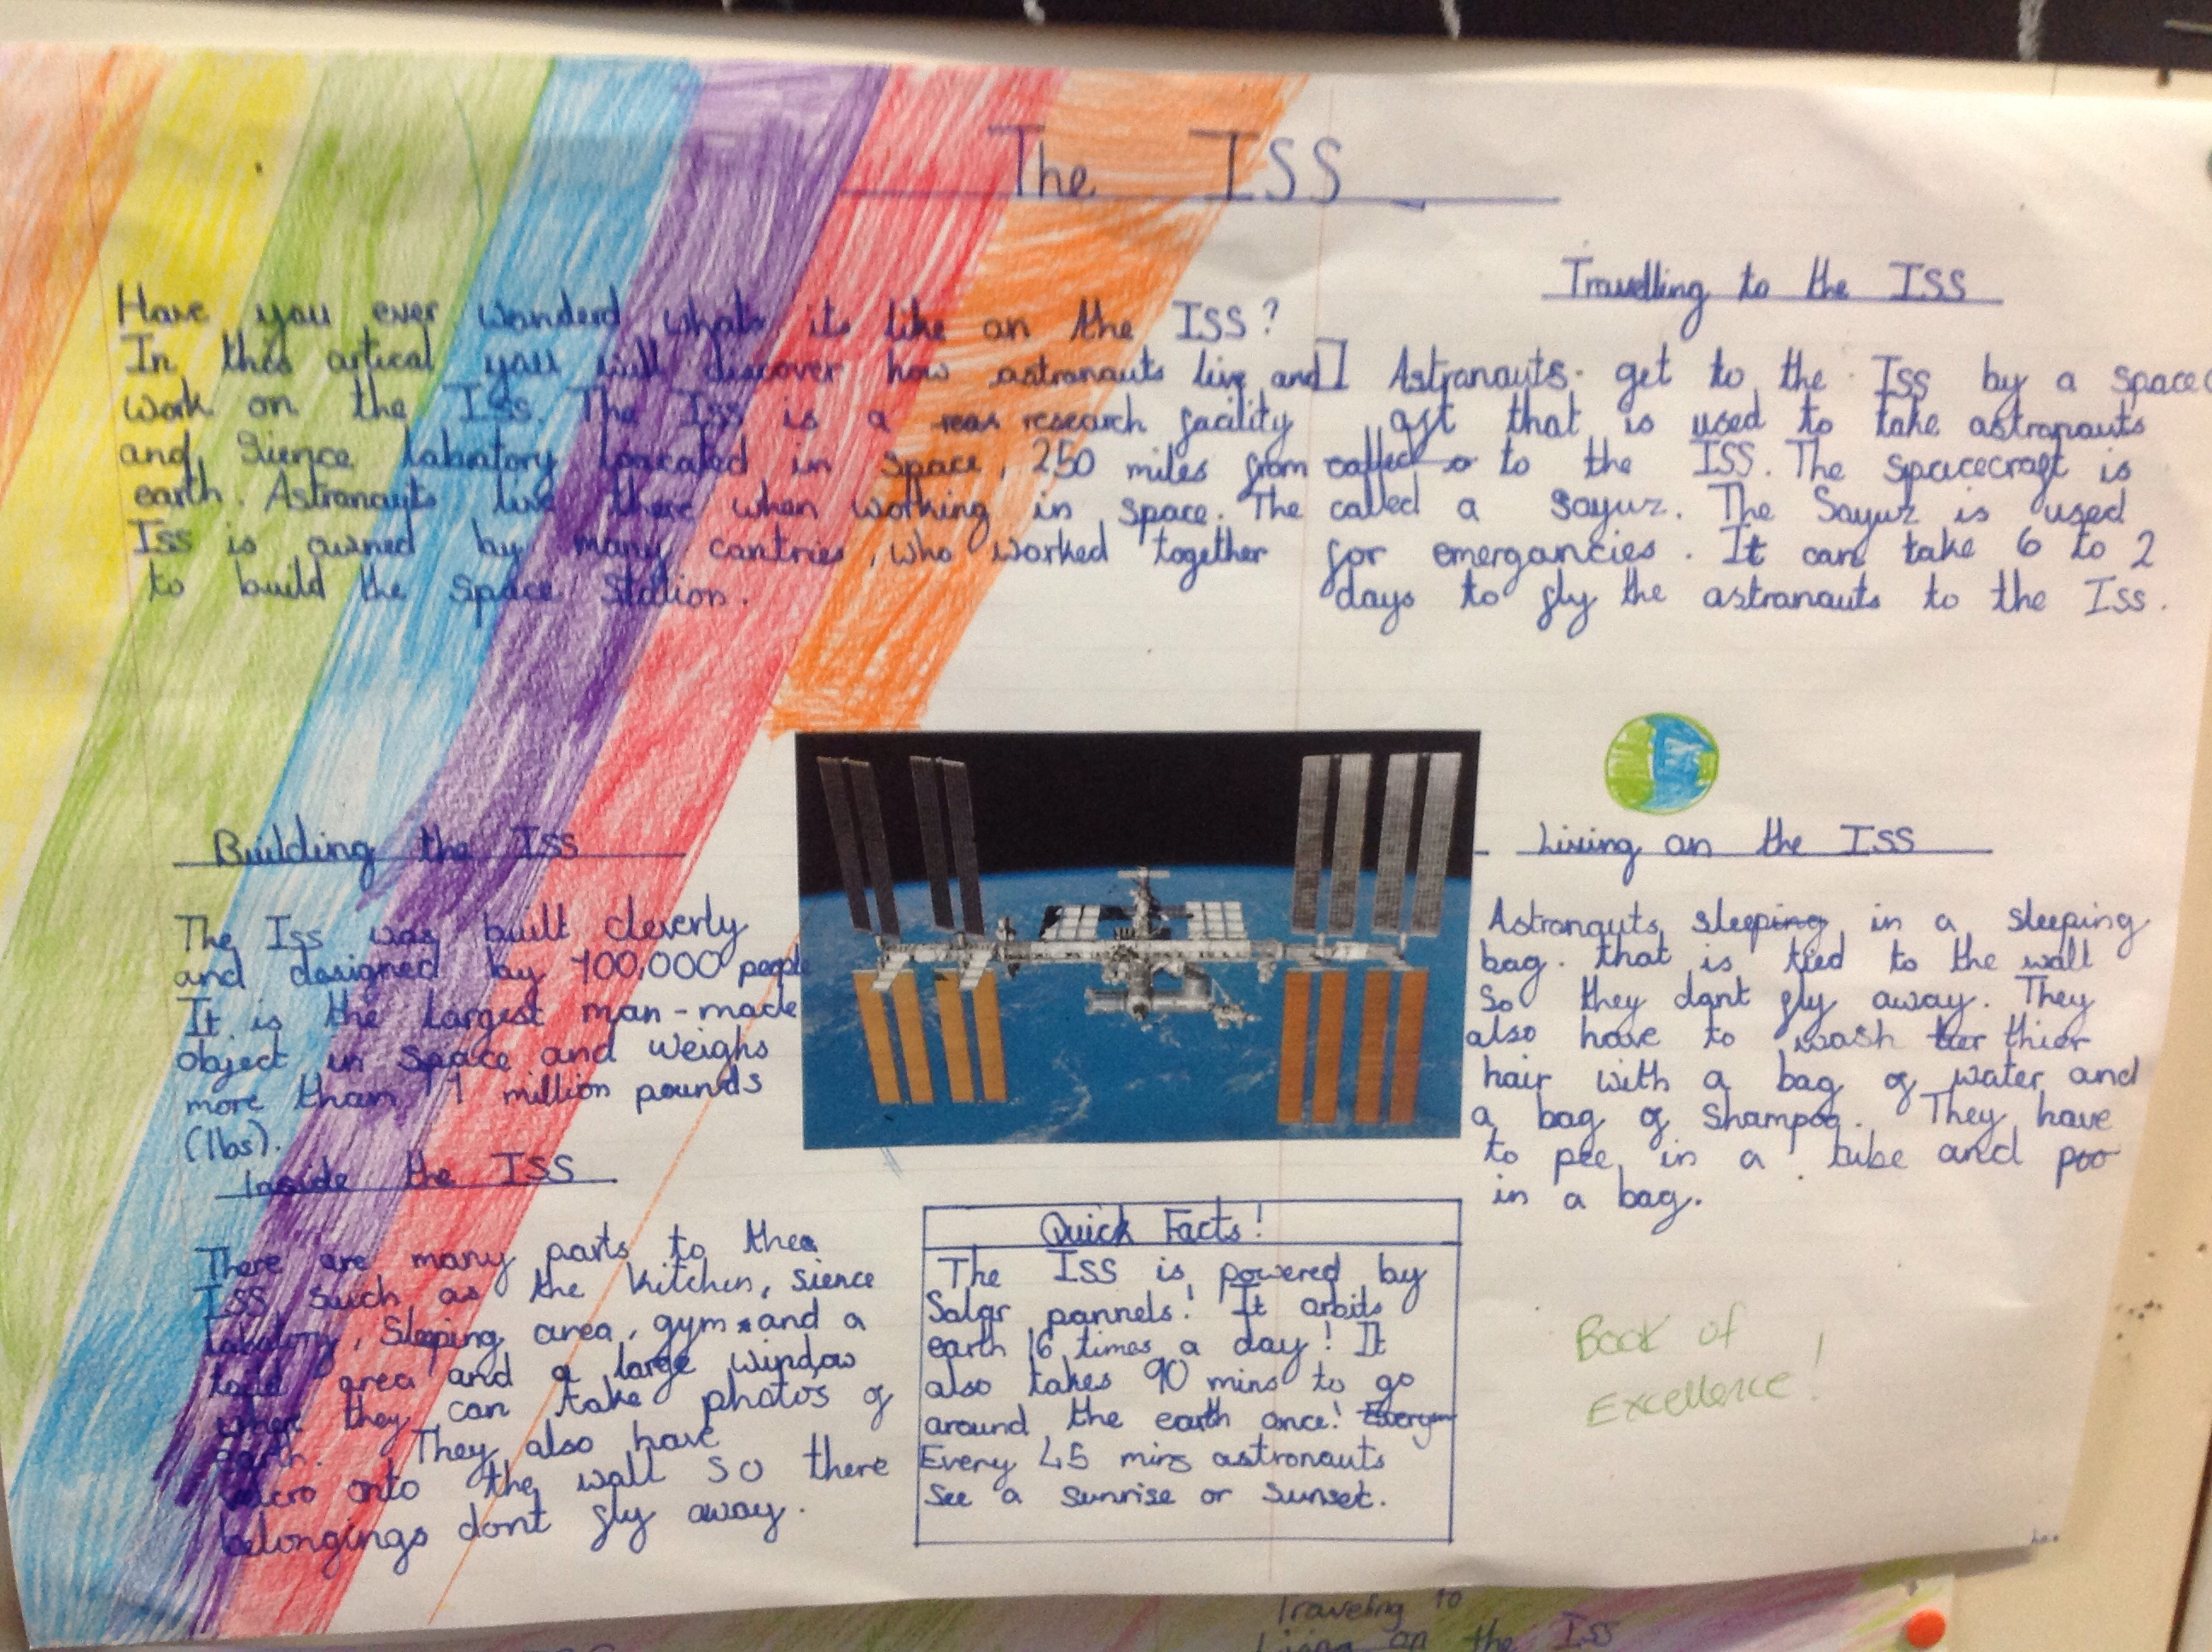 Lois's incredible writing!